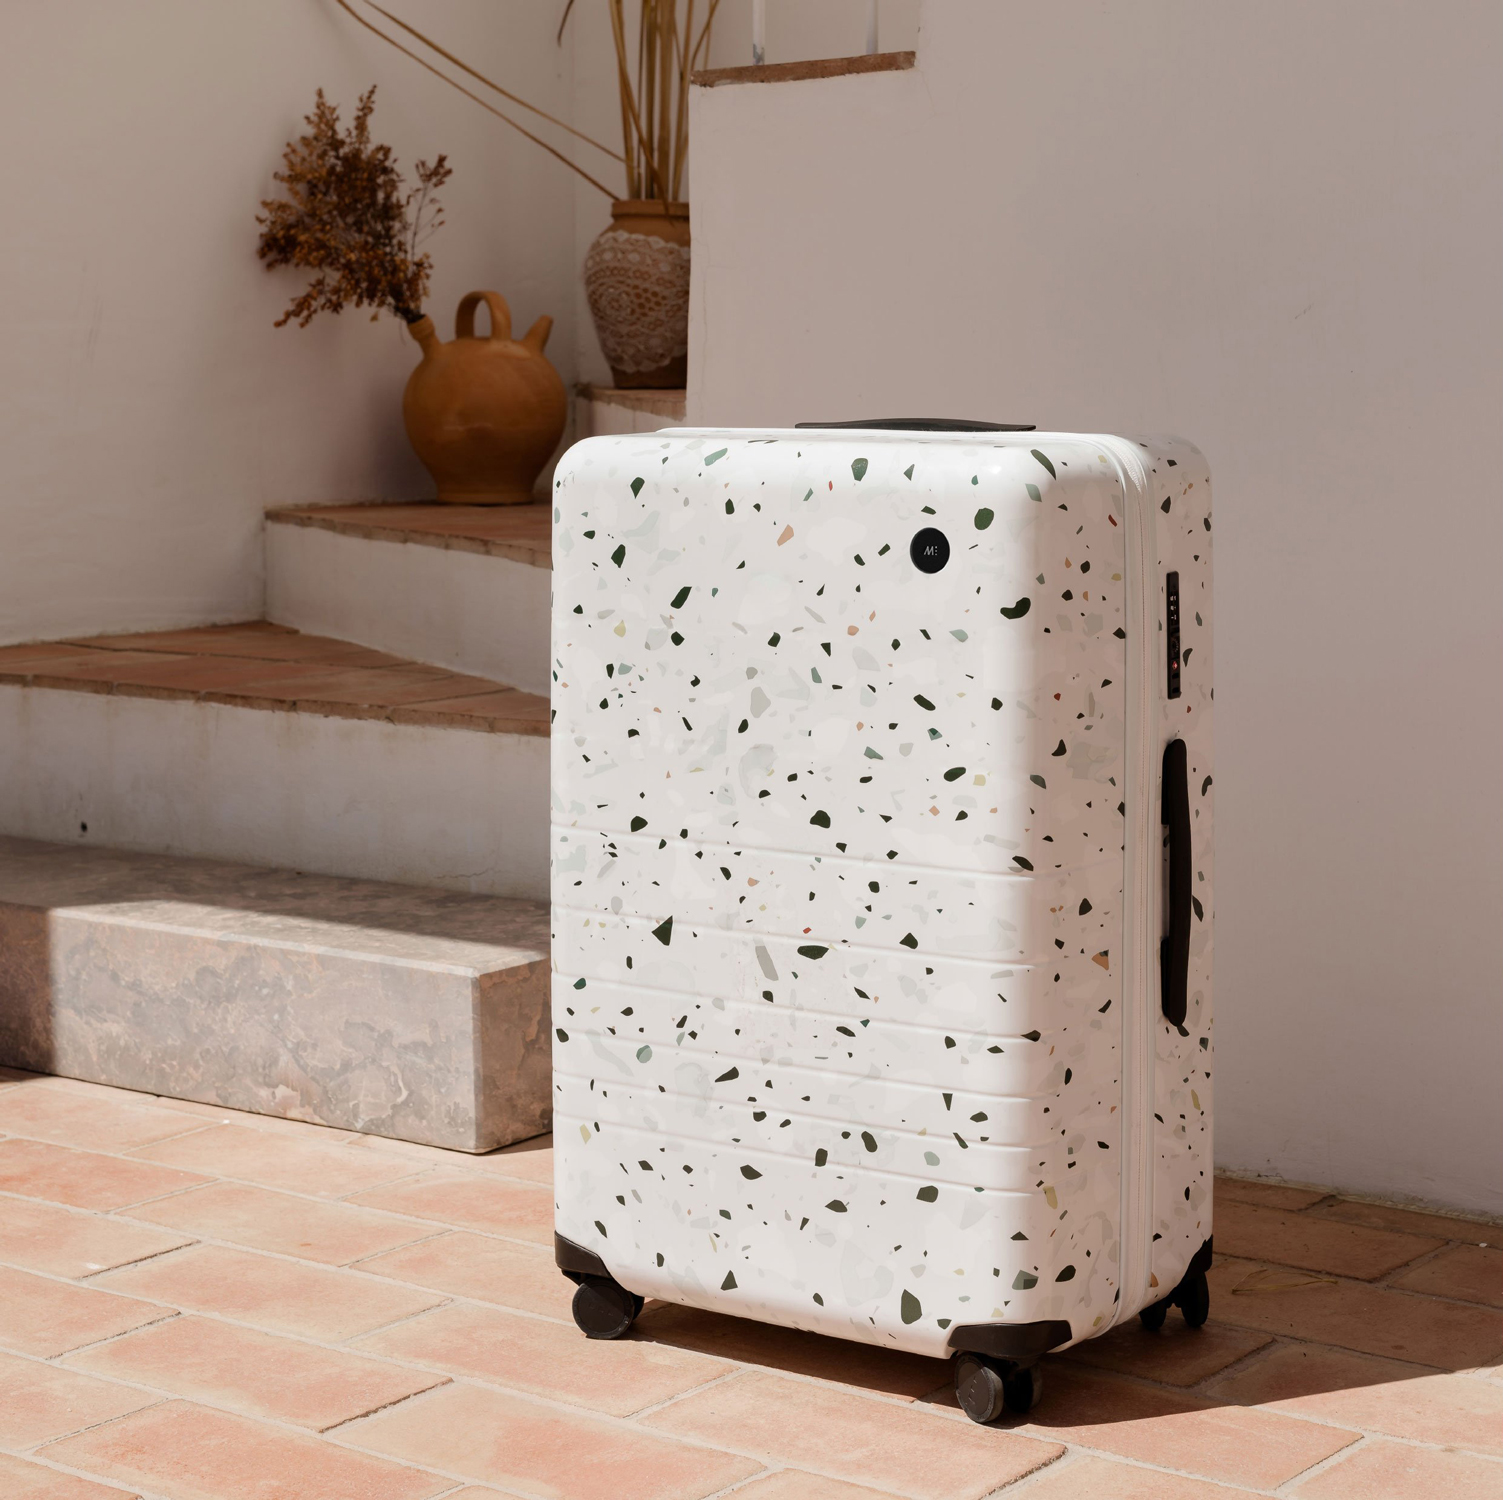 monos suitcase with speck pattern